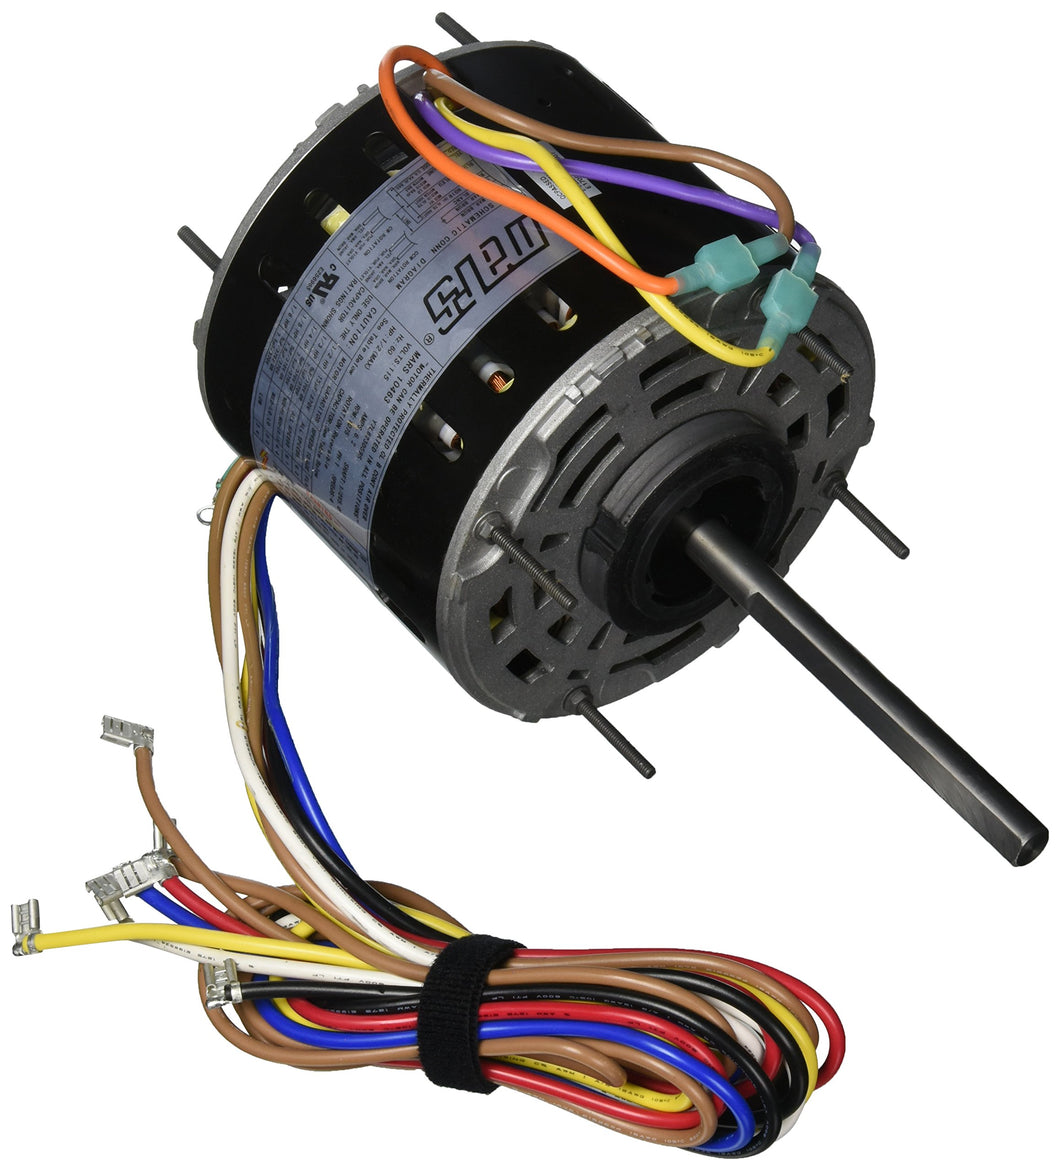 MARS - Motors & Armatures 10463 1/6-1/2 MULTI-HP 115V